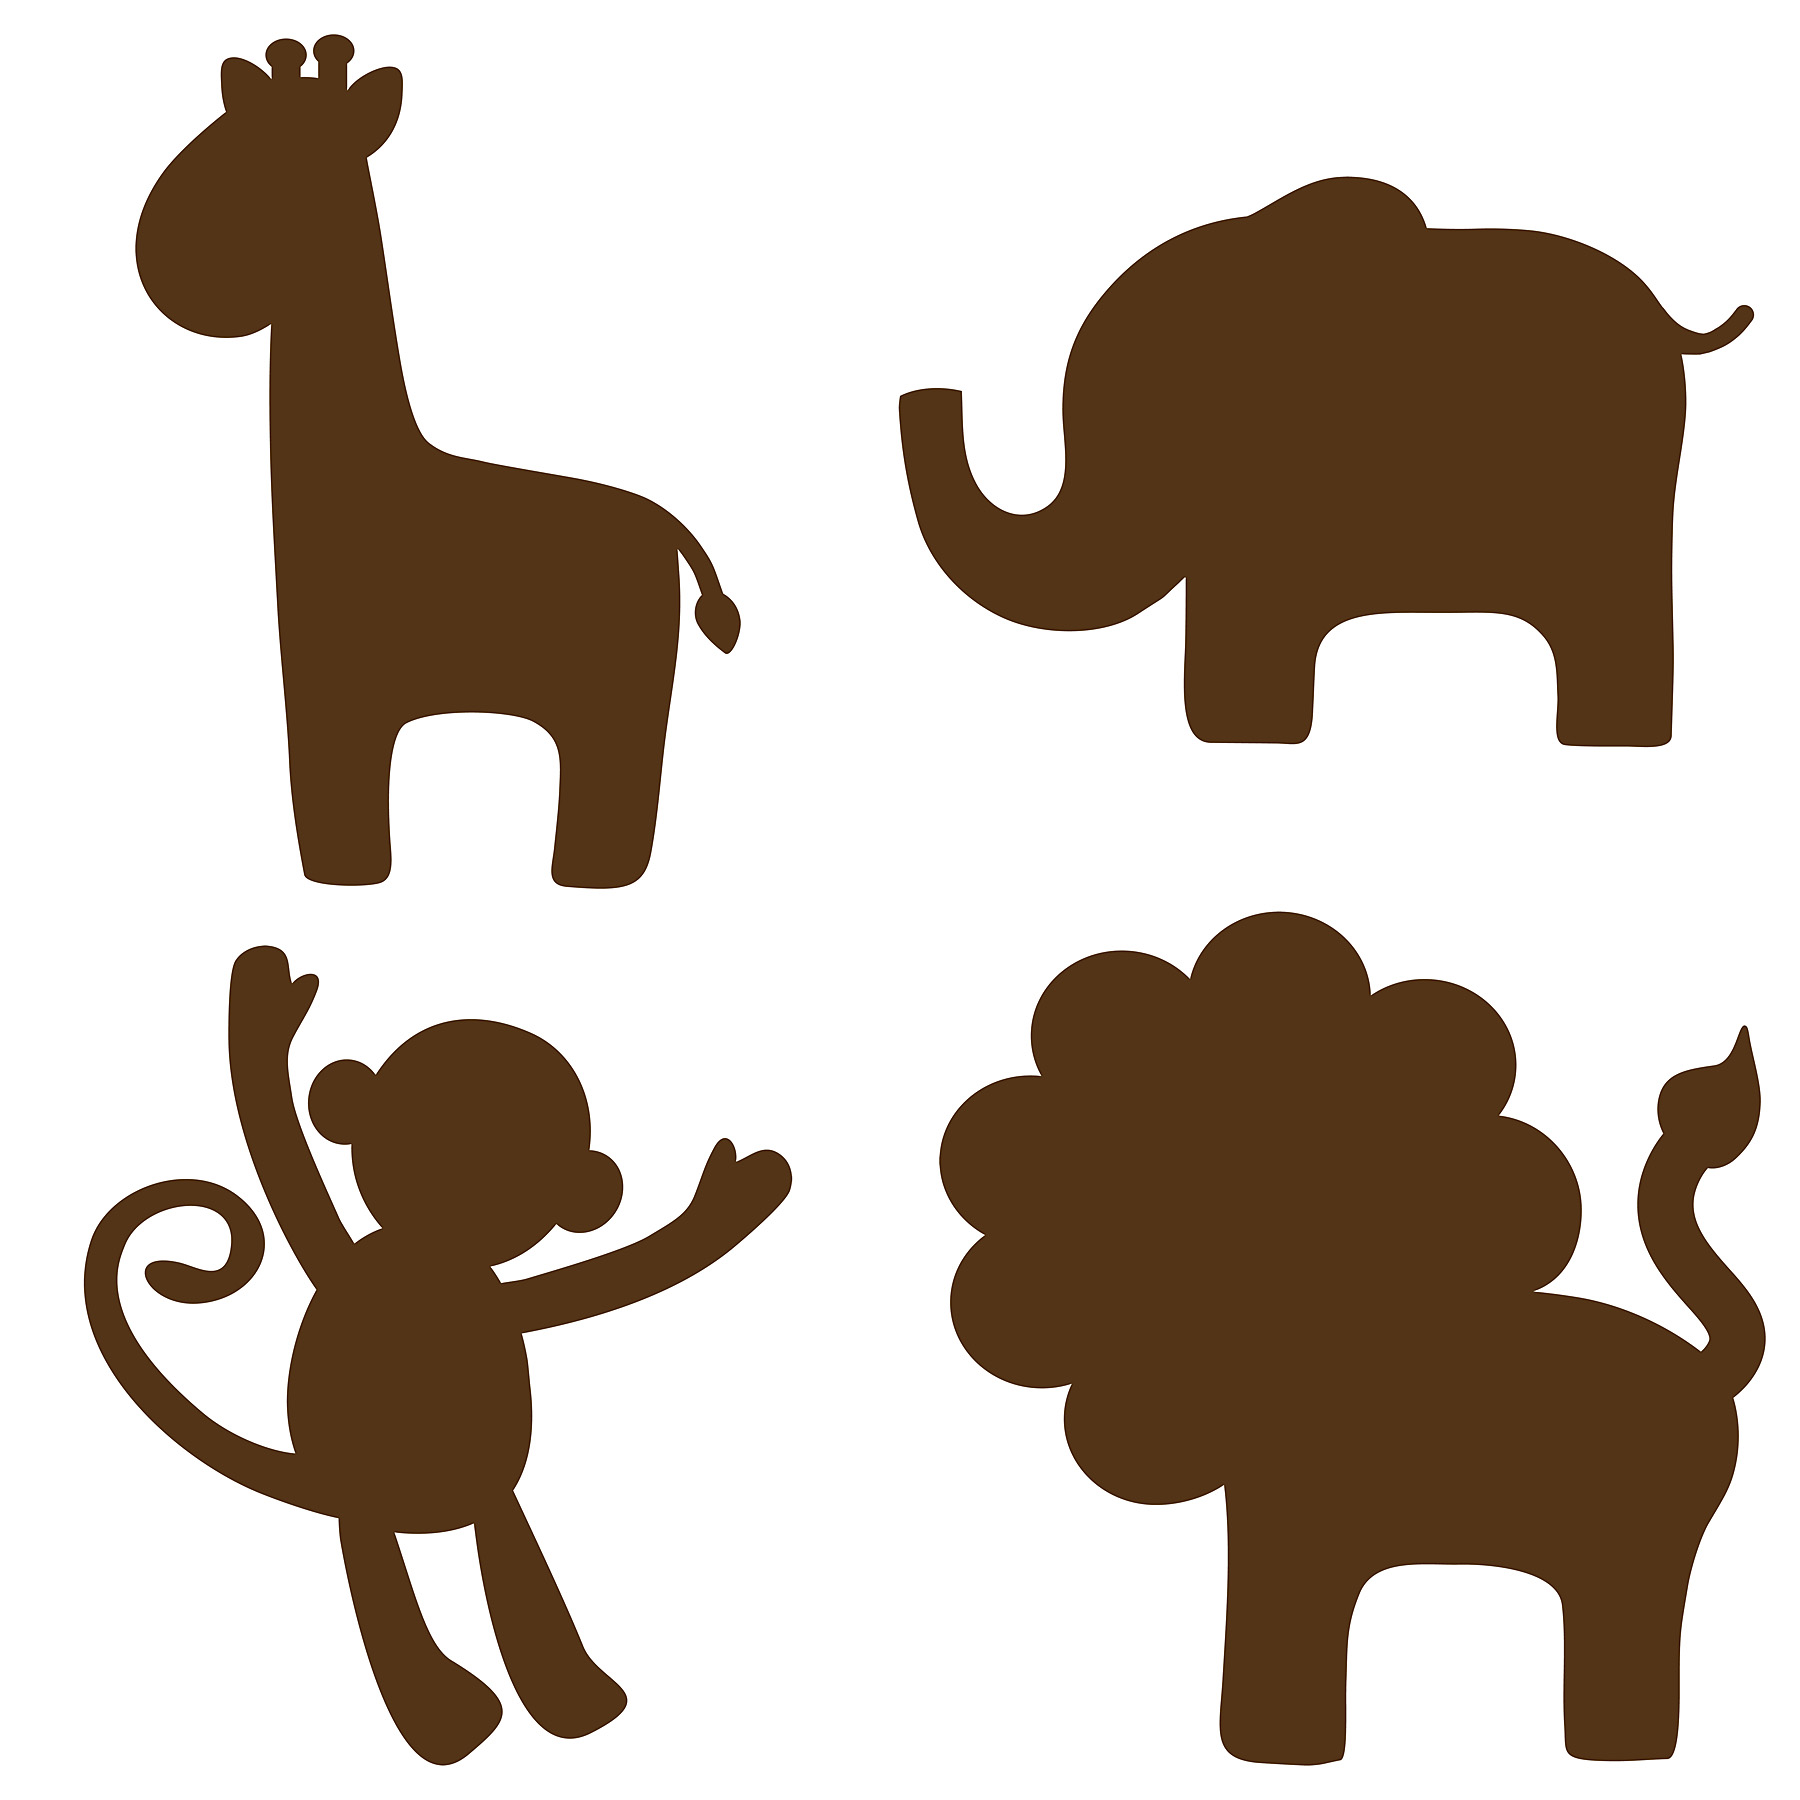 1800x1800 Wall Pops Espresso Brown Jungle Silhouettes Decals